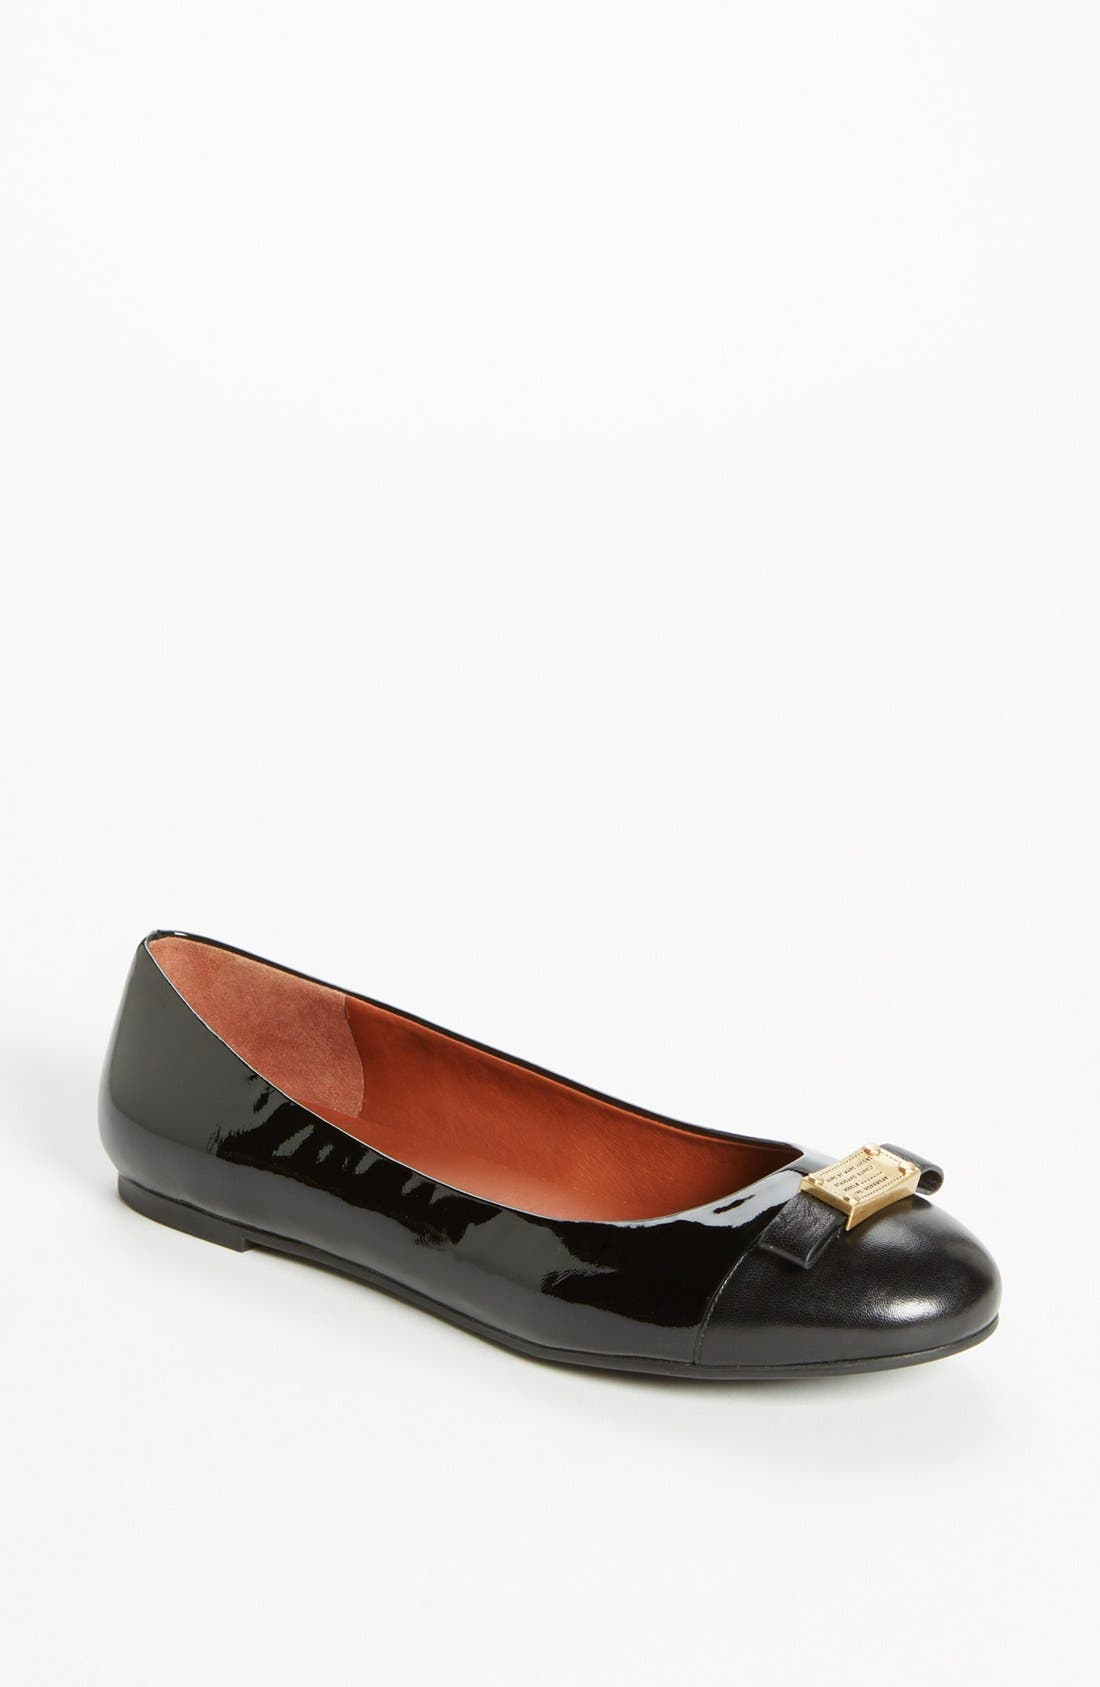 Alternate Image 1 Selected - MARC BY MARC JACOBS 'Tuxedo' Logo Plaque Ballerina Flat